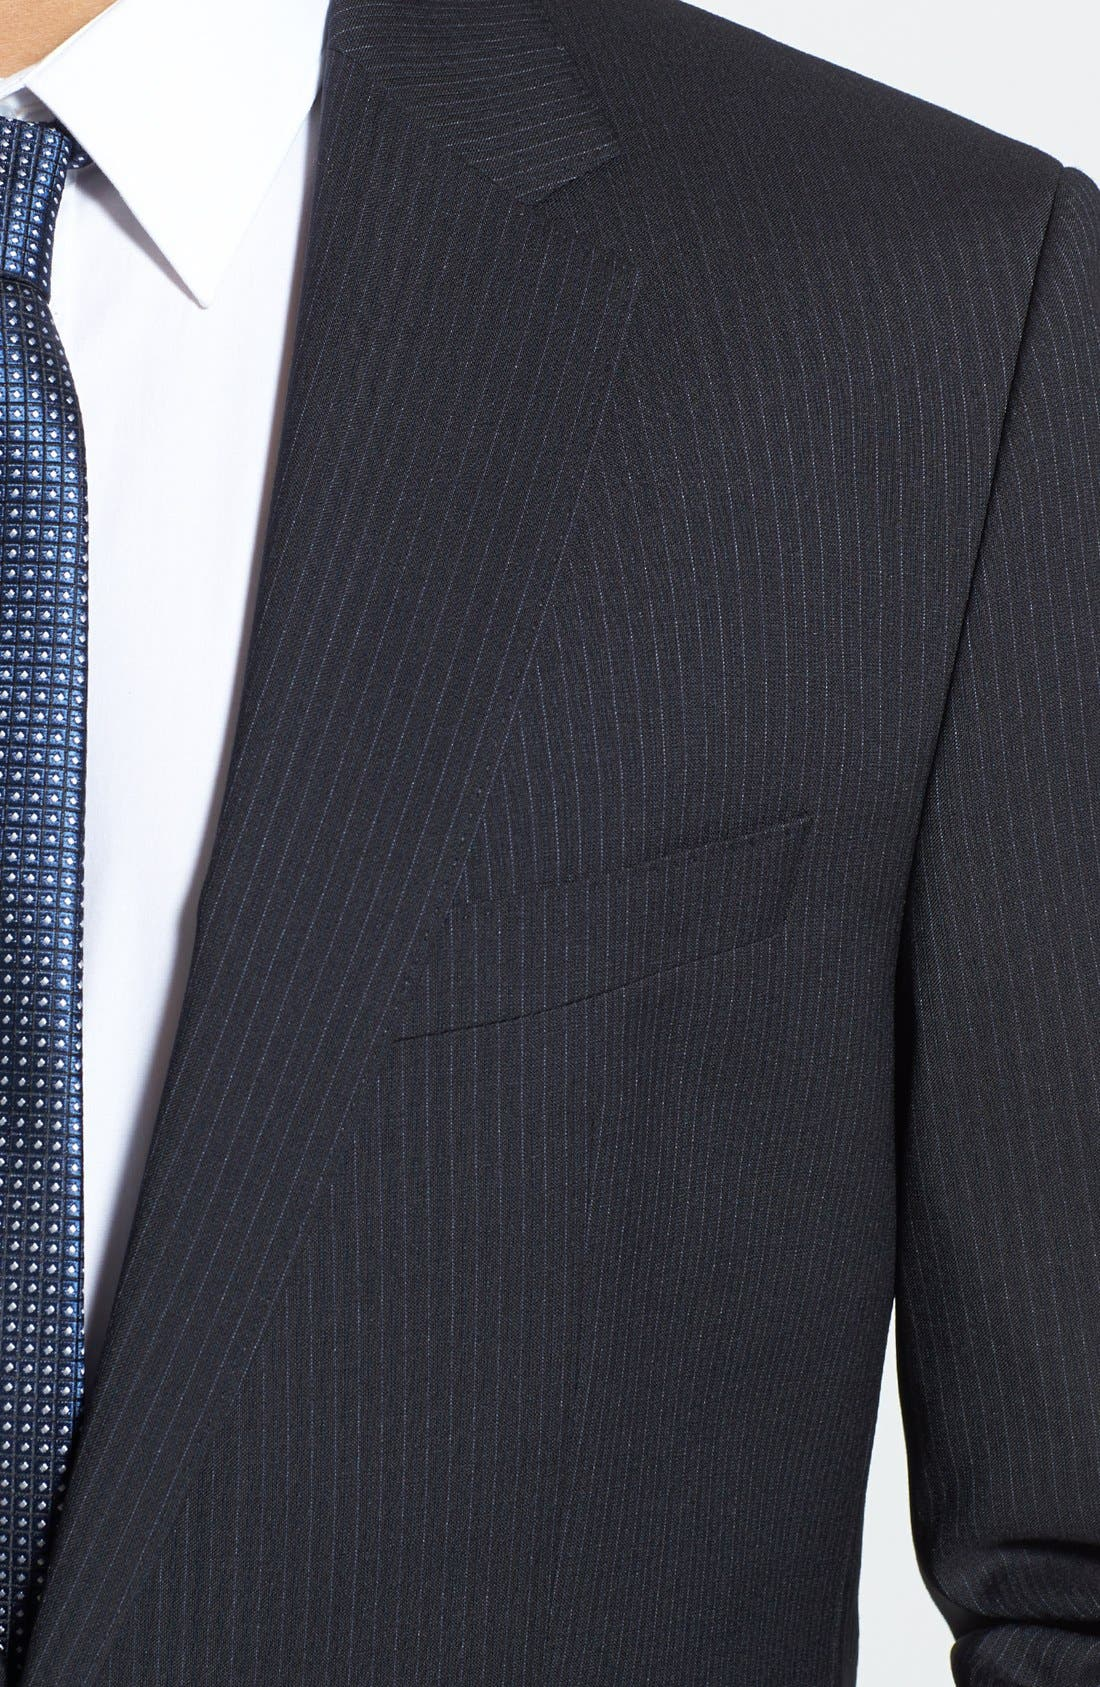 BOSS 'James/Sharp' Trim Fit Stripe Suit,                             Alternate thumbnail 6, color,                             410